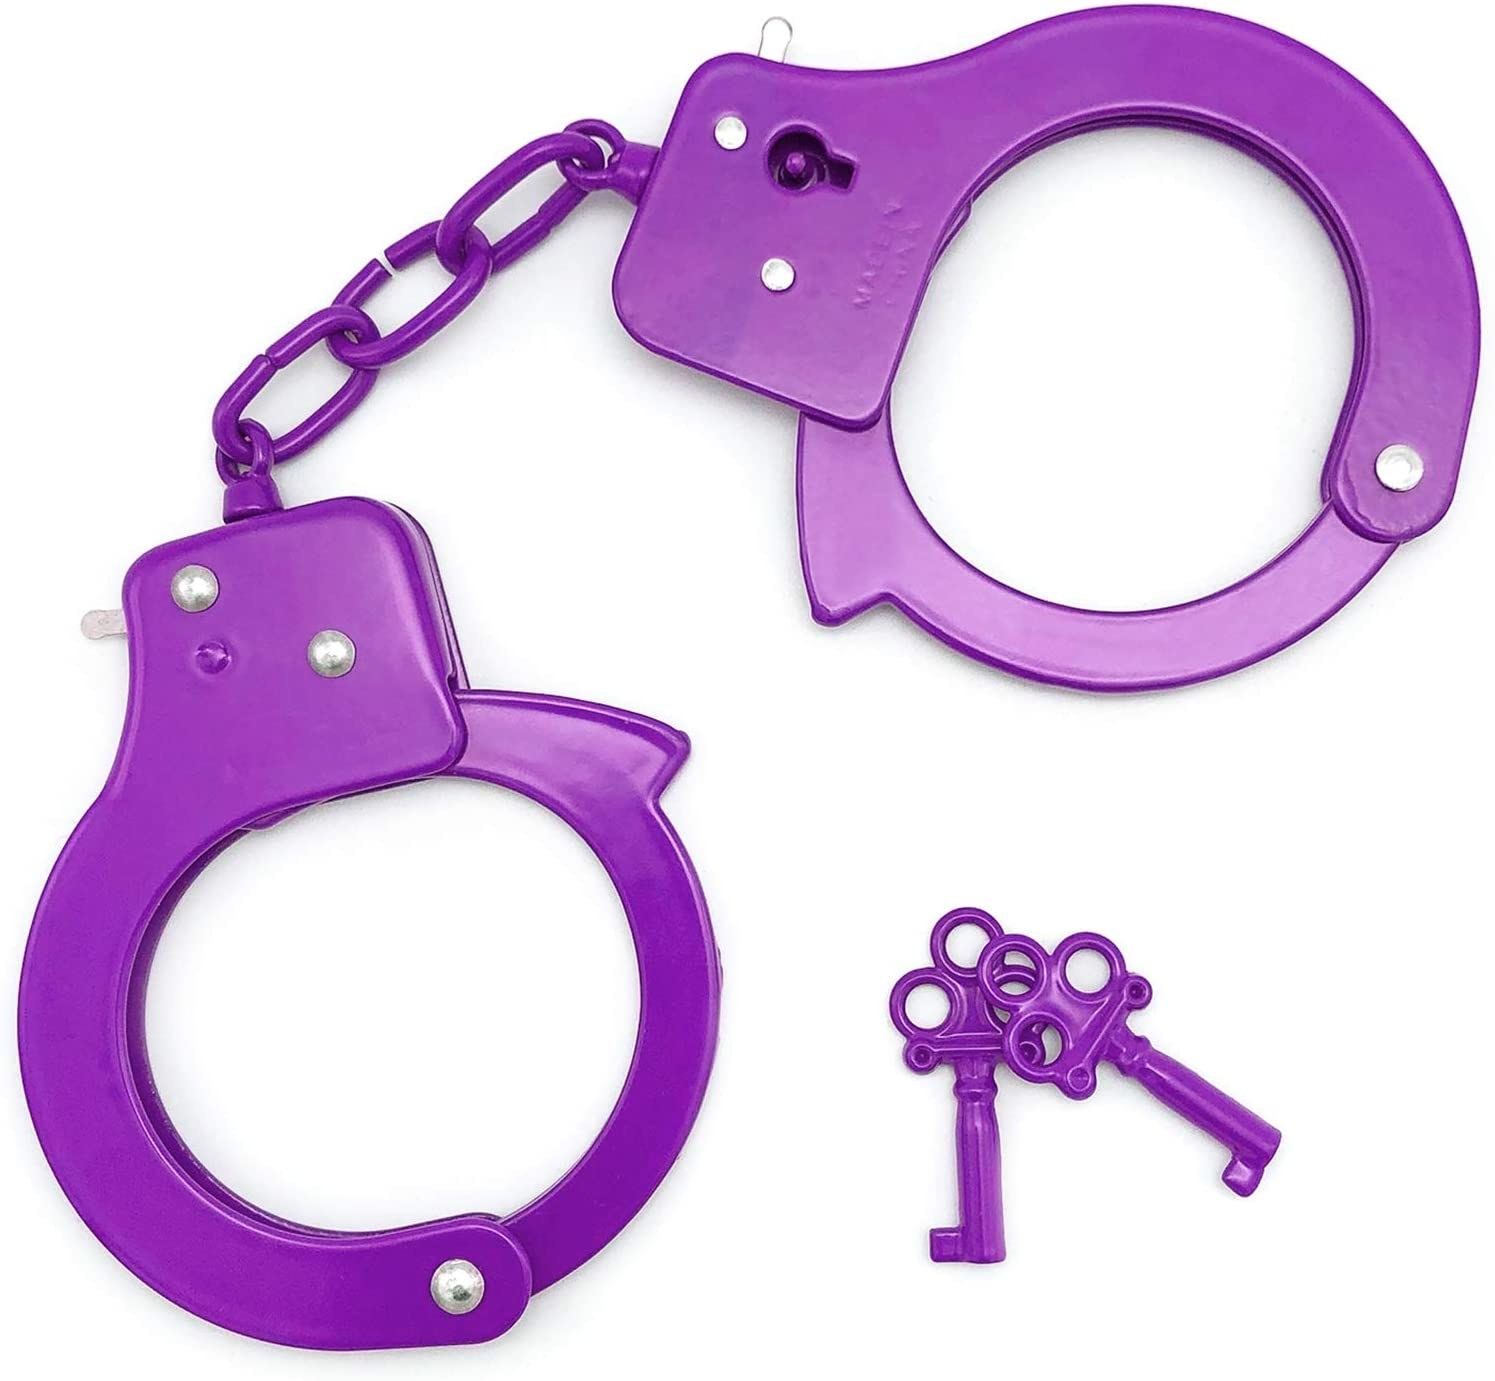 The purple SYOSIN Toy Metal Handcuffs and keys